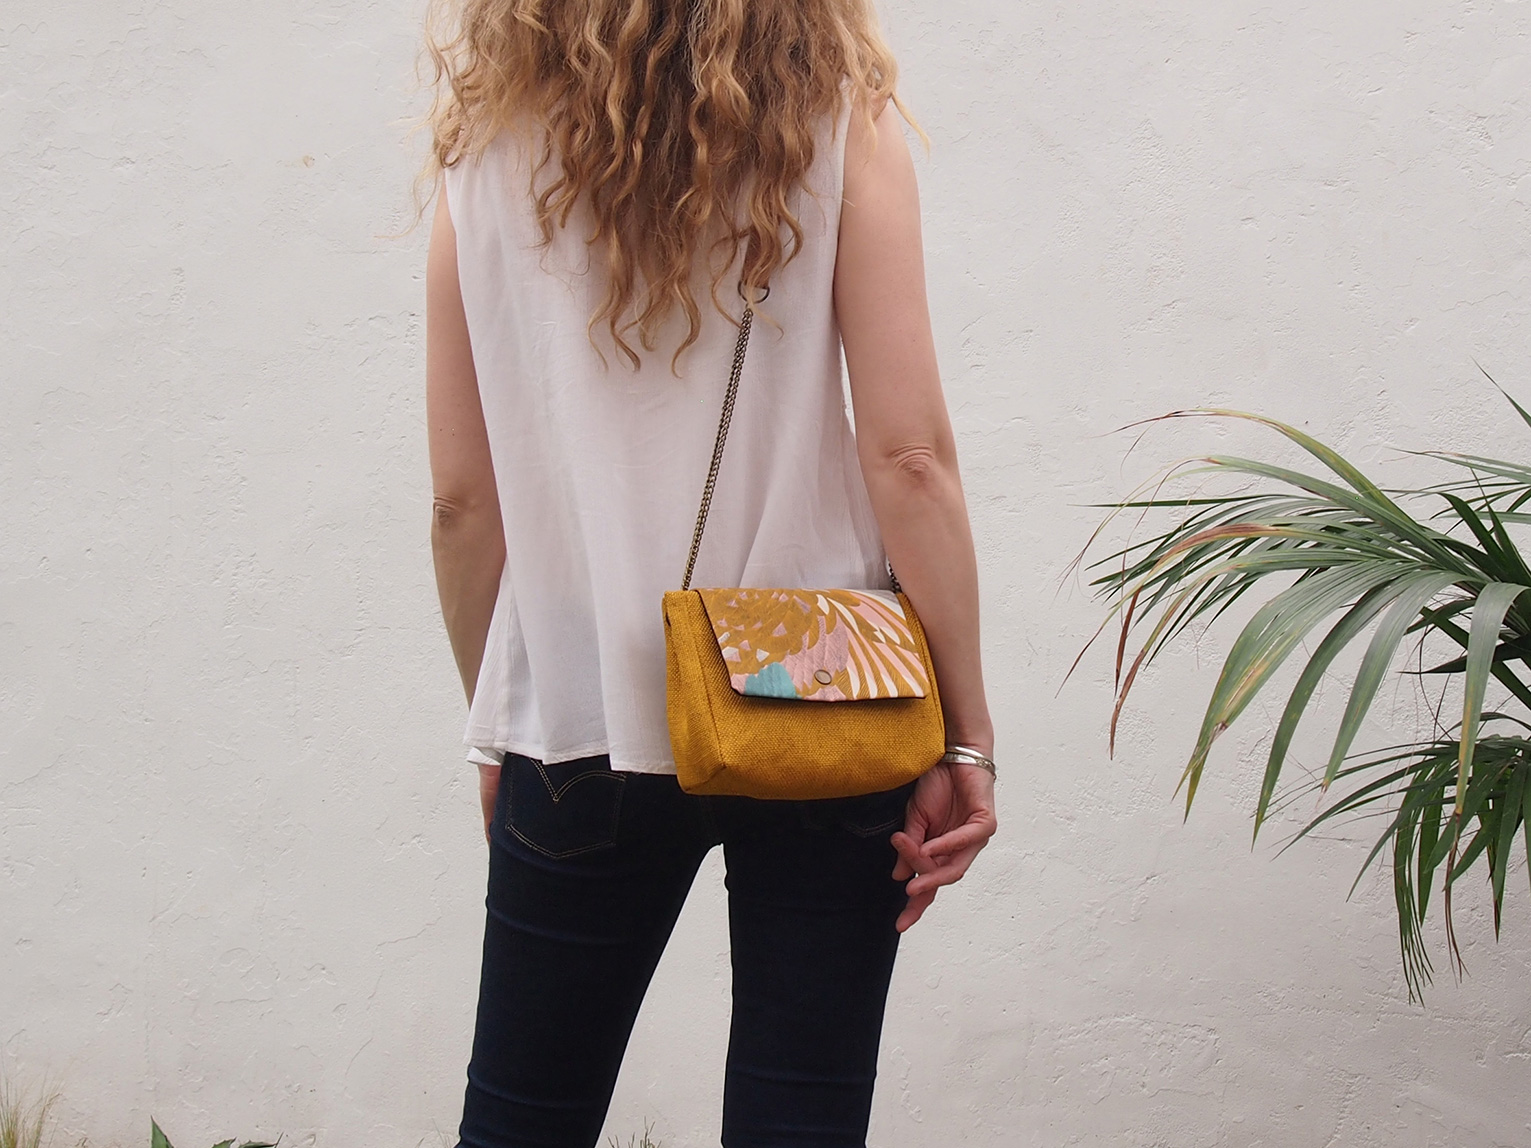 Sac June ecru rabat au choix interchangeable